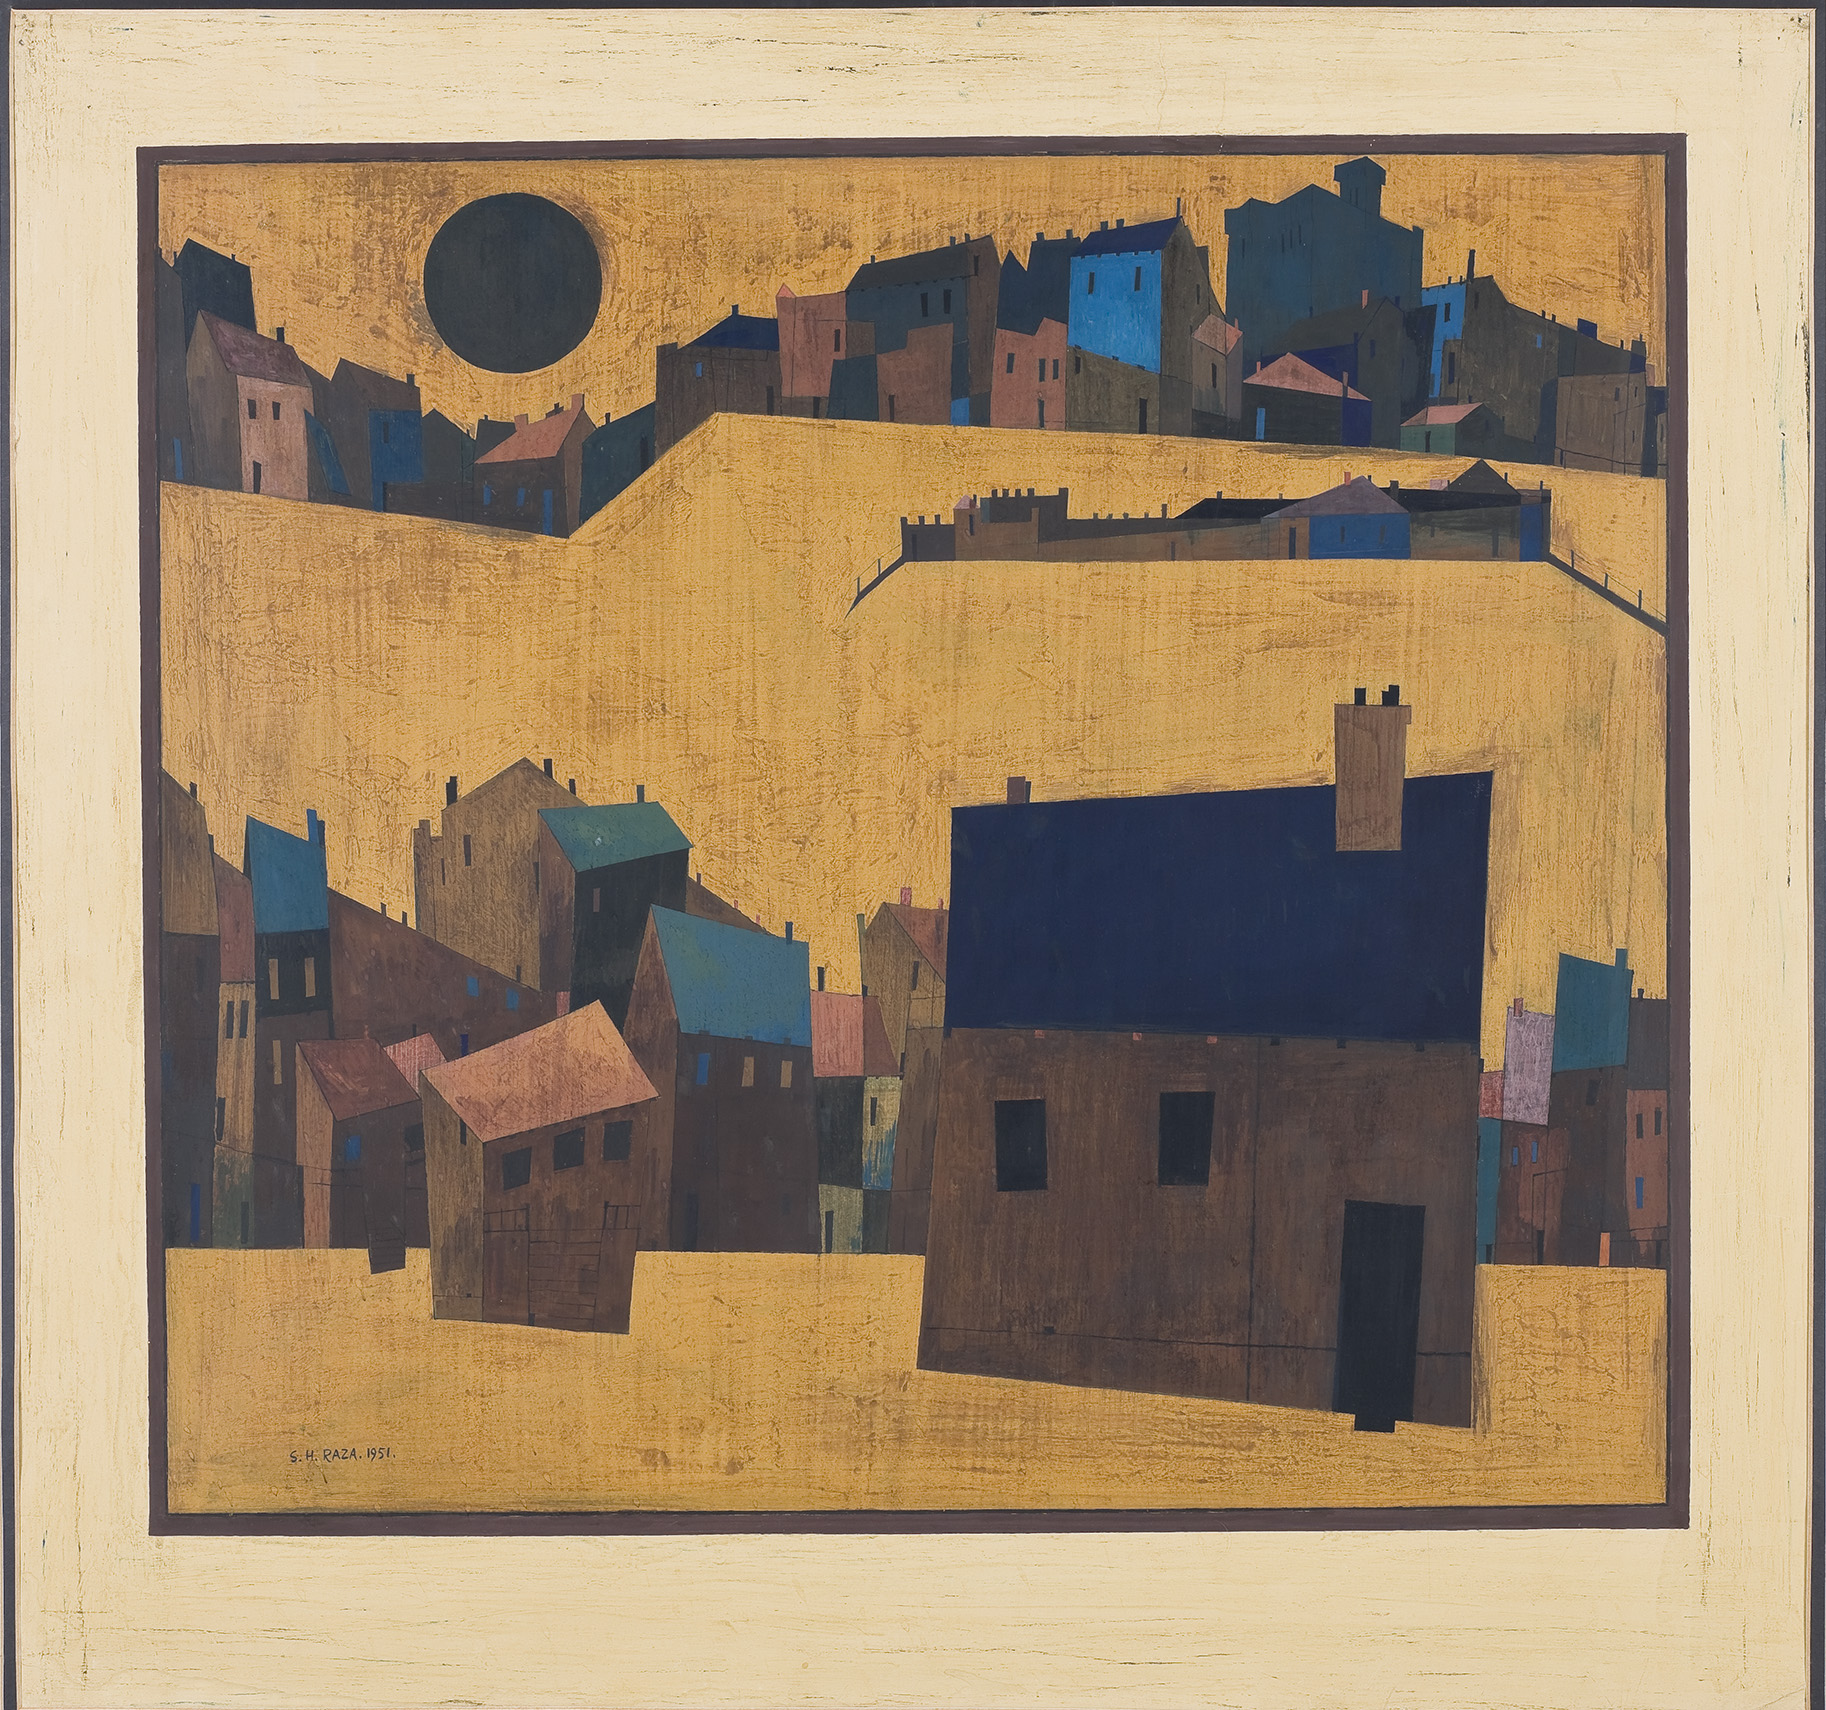 Haut de Cagnes (1951), S. H. Raza. Courtesy of the Darashaw Collection.